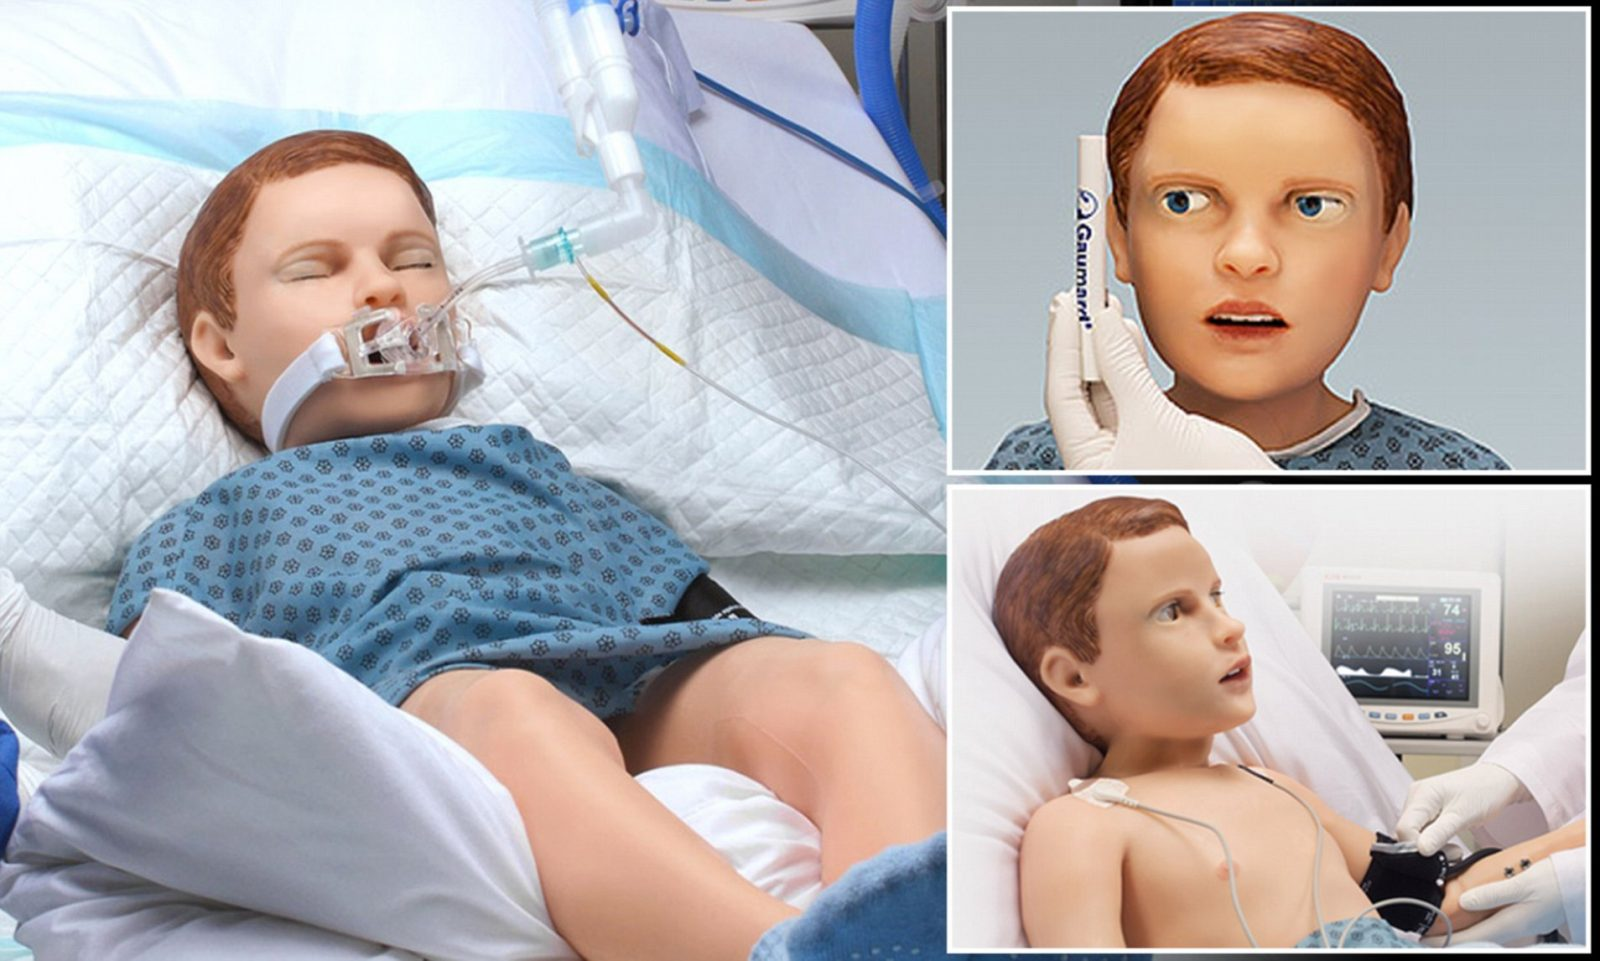 Meet HAL, the robotic five-year-old boy that breathes, bleeds and even calls for his mom: 'Hyper-real' doll set to train students